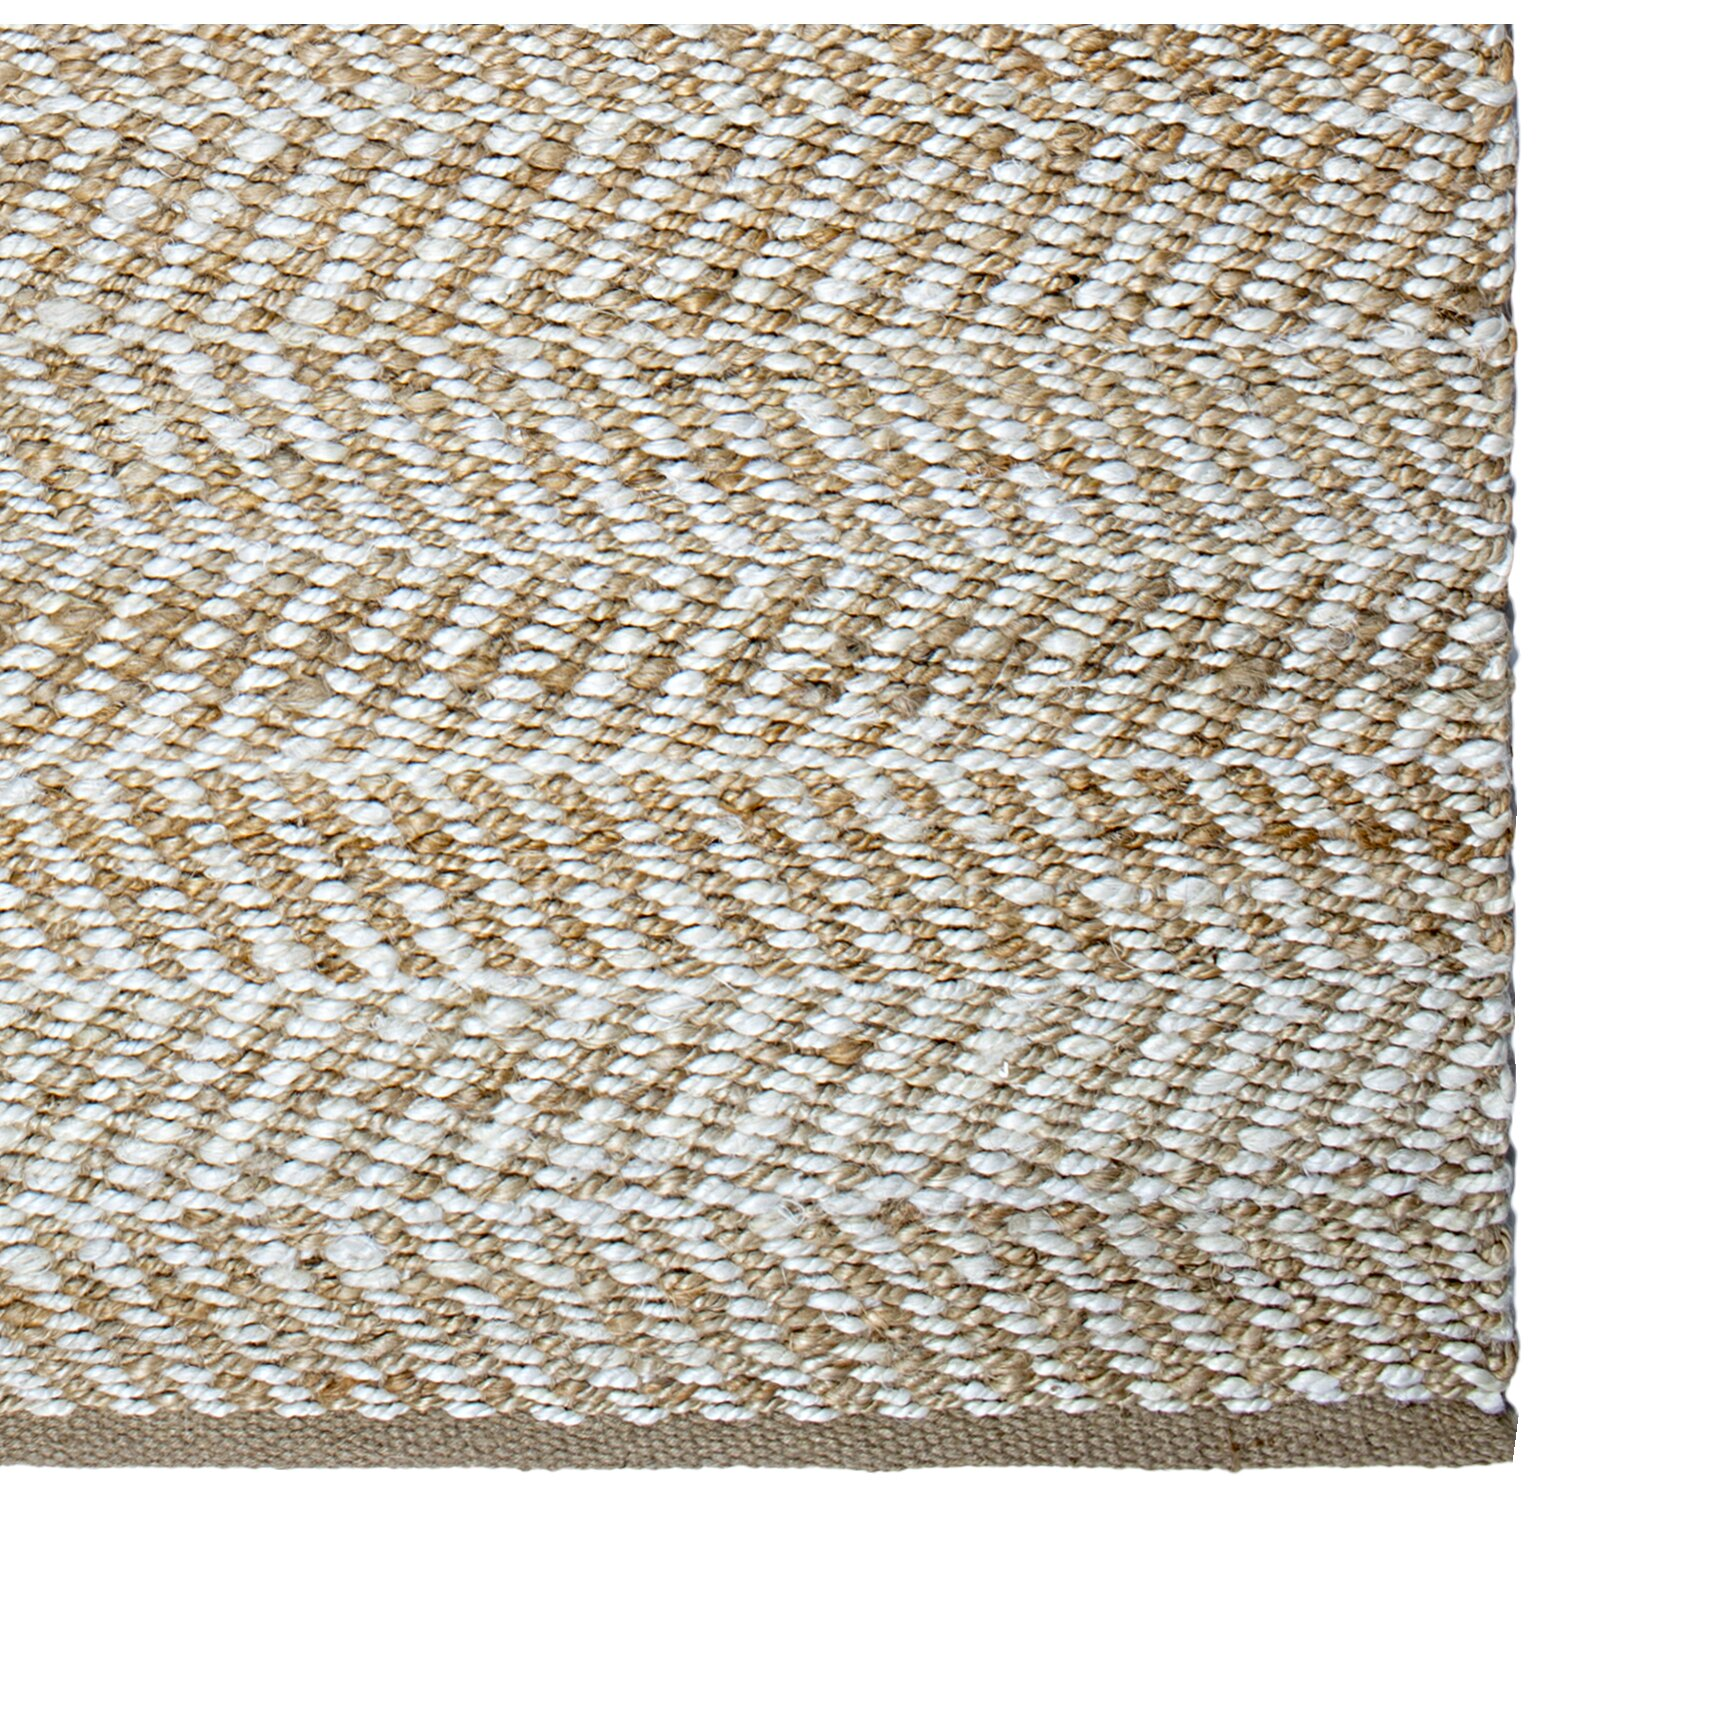 Fab habitat heartland canyon hand woven light brown white for Woven vinyl outdoor rugs